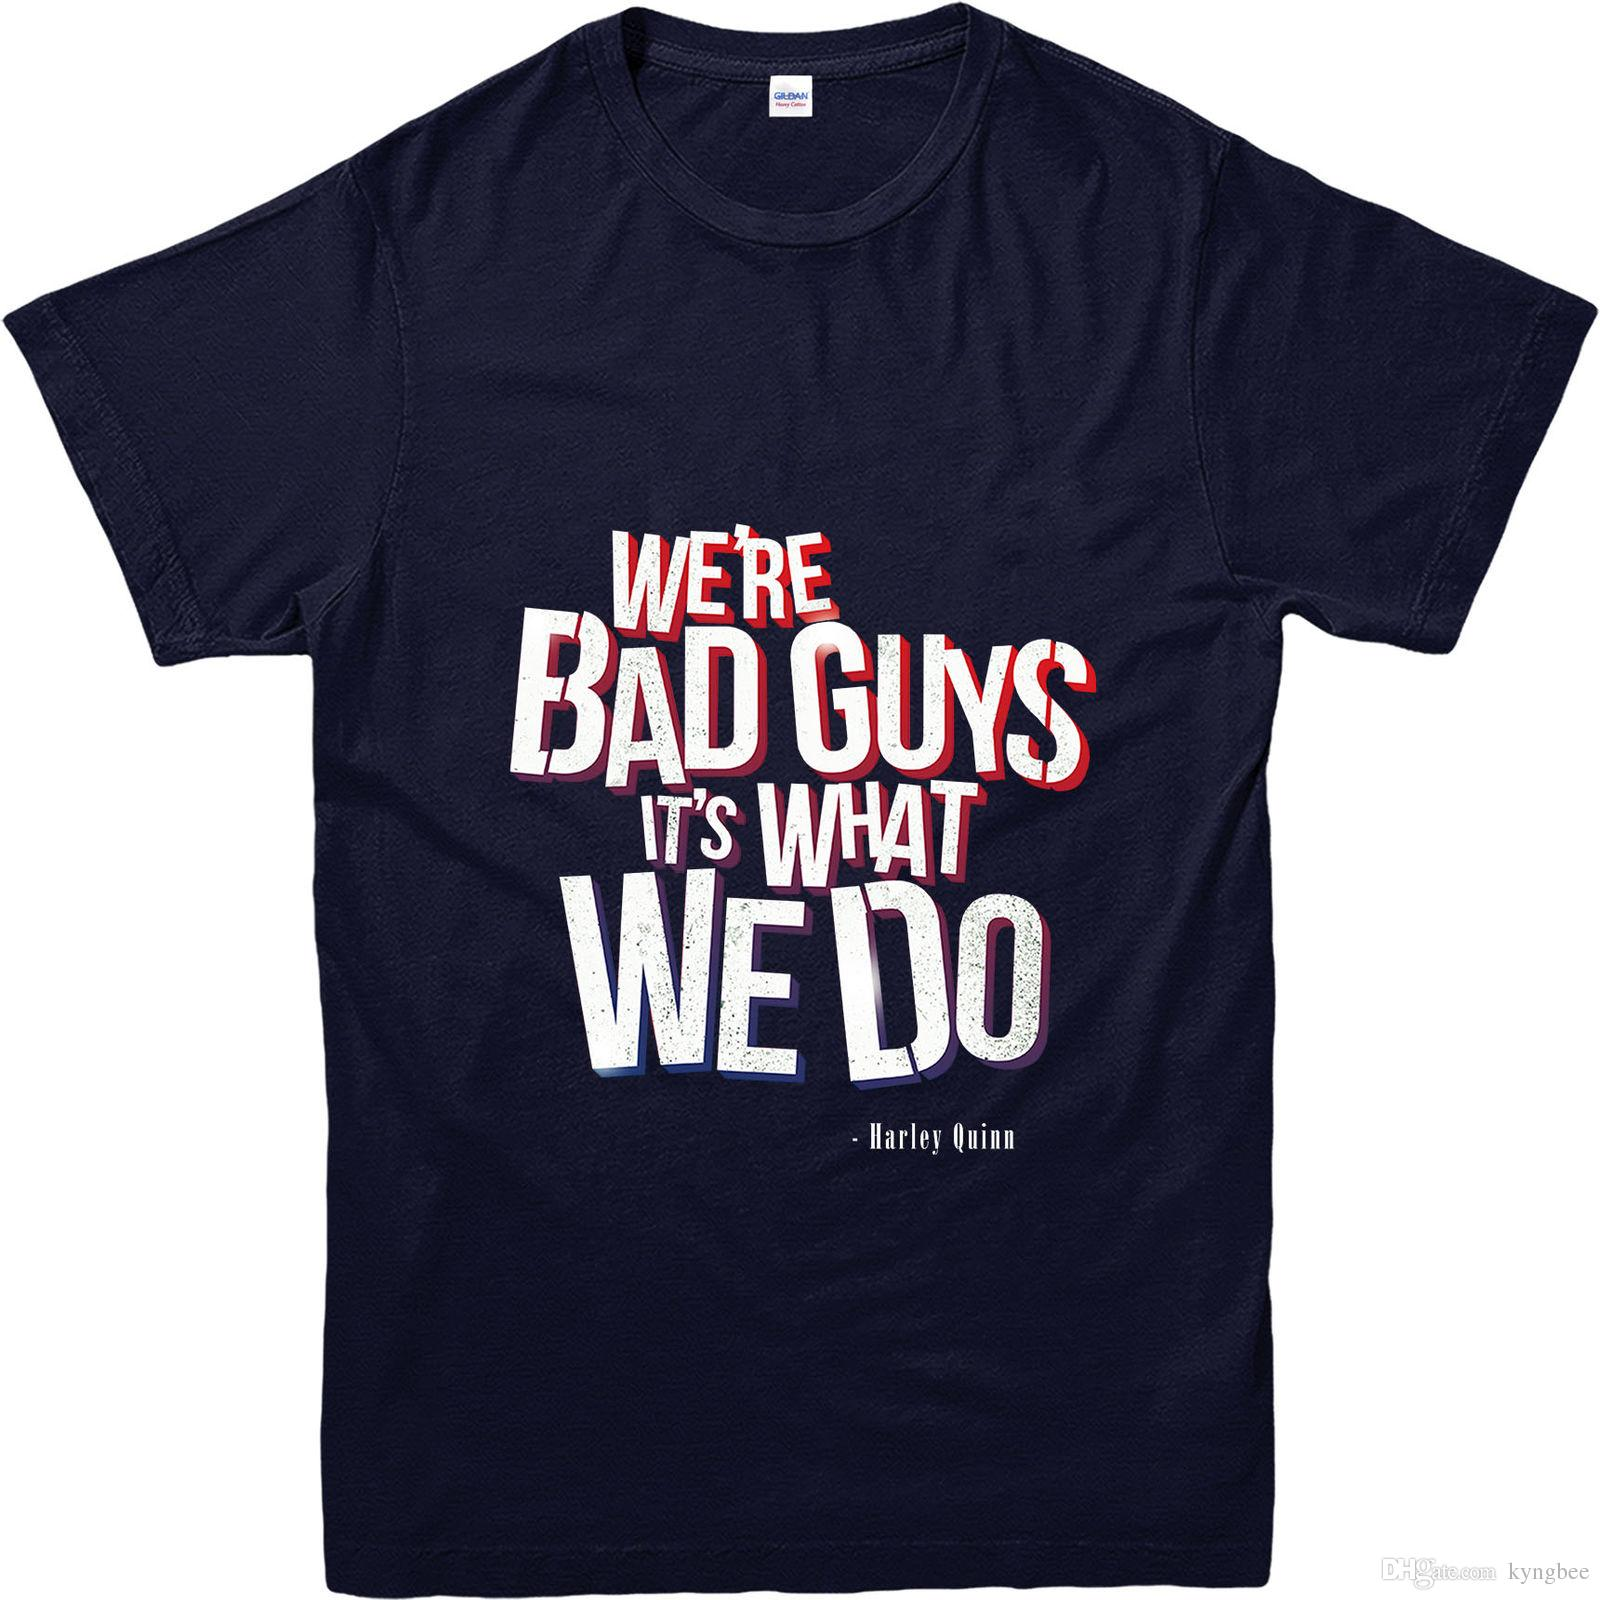 Suicide Squad T-Shirt Harley Quinn Bad Guys Quote T-Shirt Inspired Design  Top